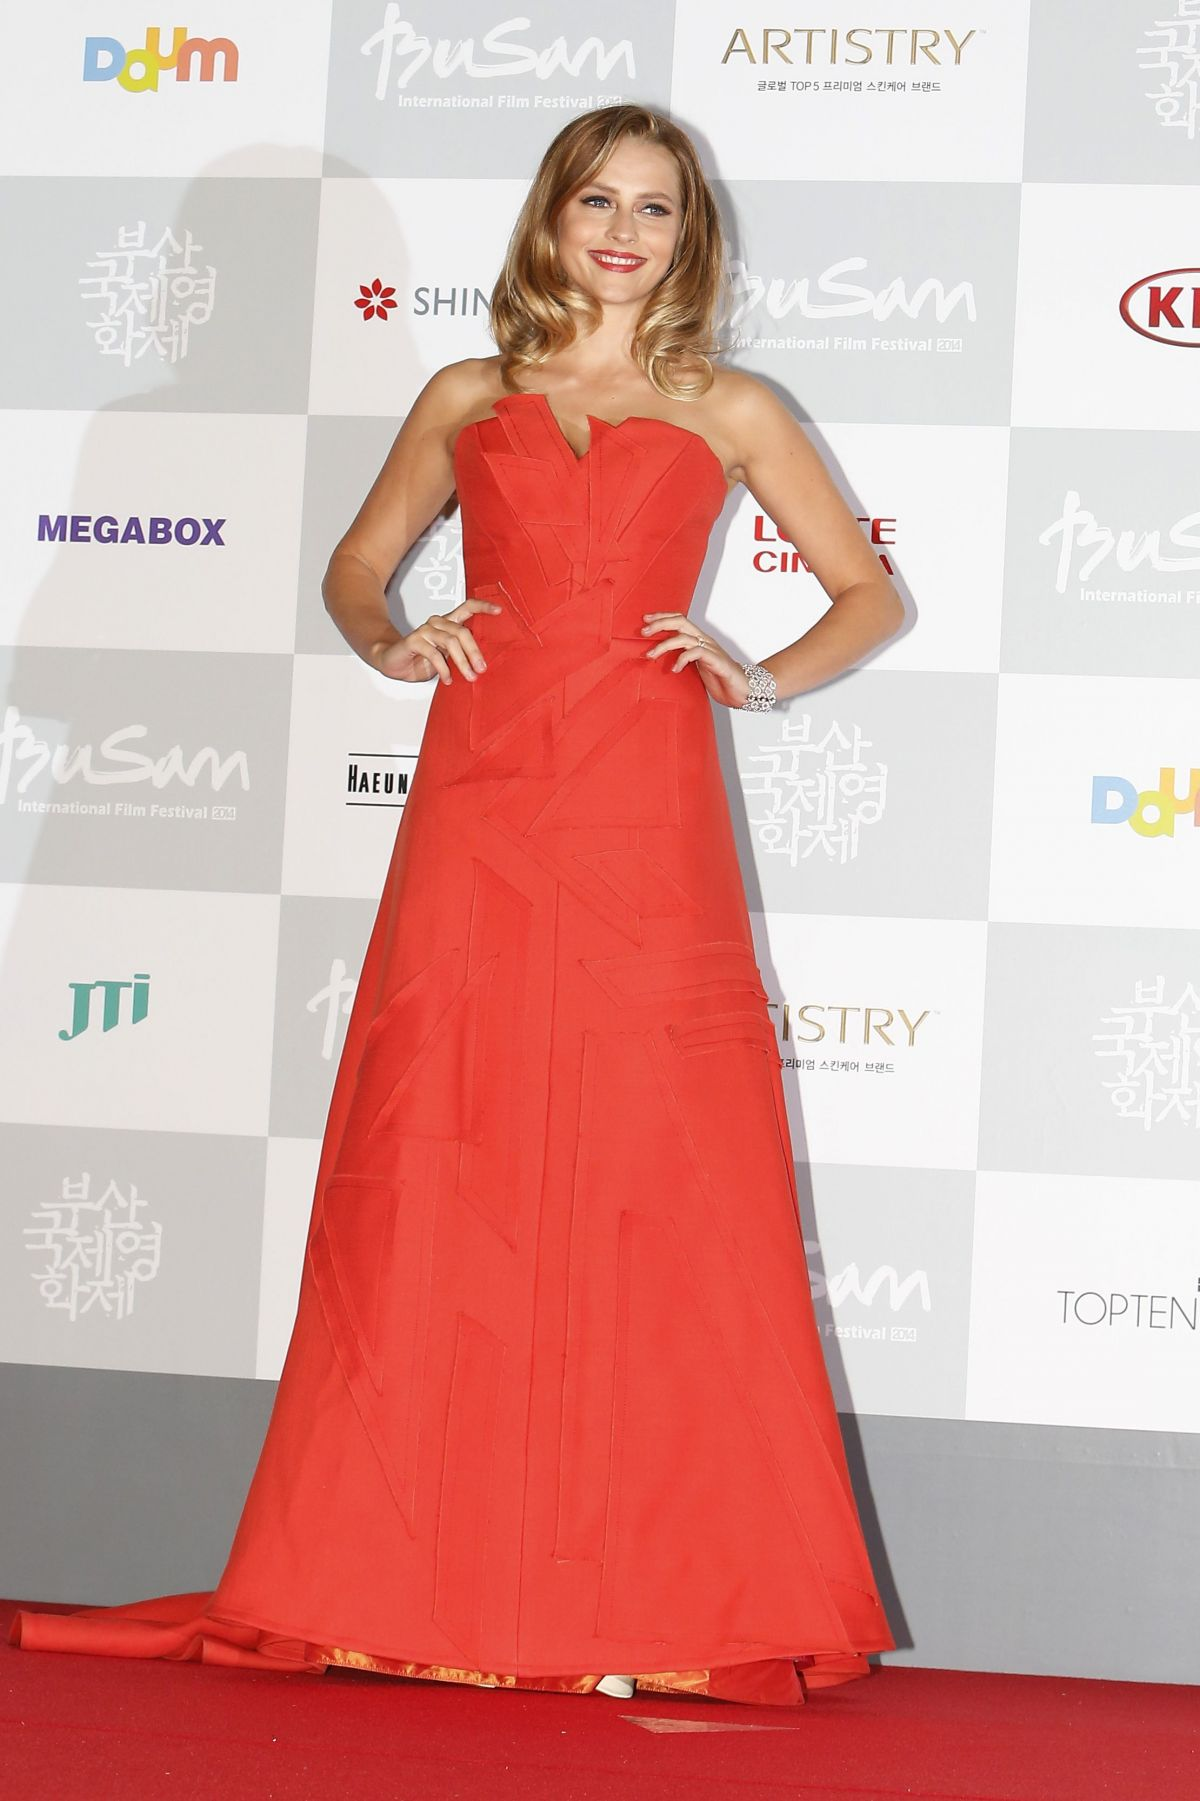 teresa-palmer-at-2014-busan-international-film-festival-opening-ceremony_1